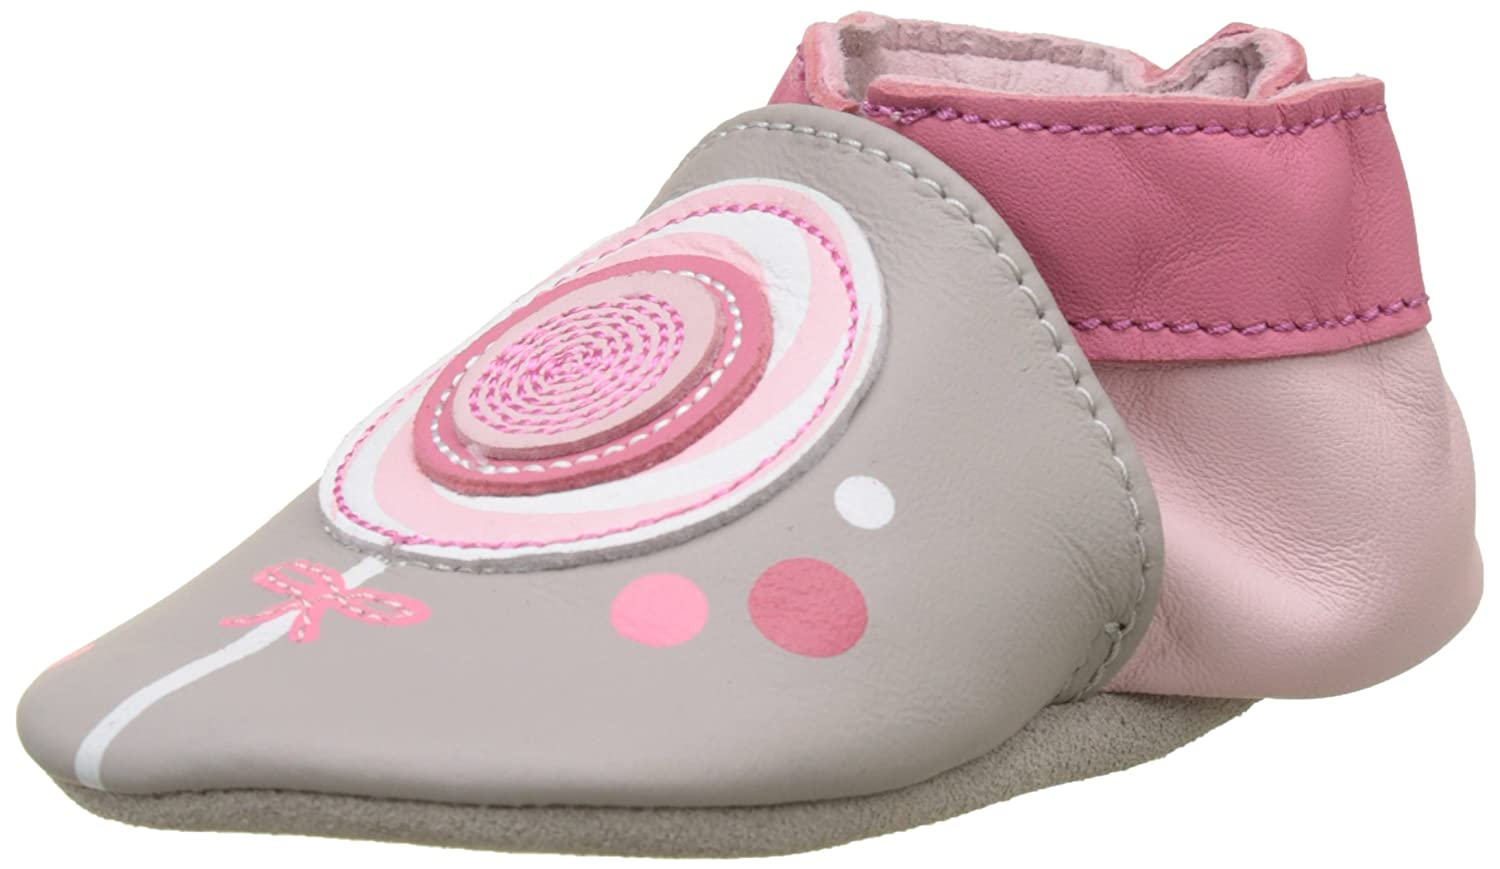 Baby Shoes Bobux Unisex Babies' 460739 Walking Baby Shoes Booties